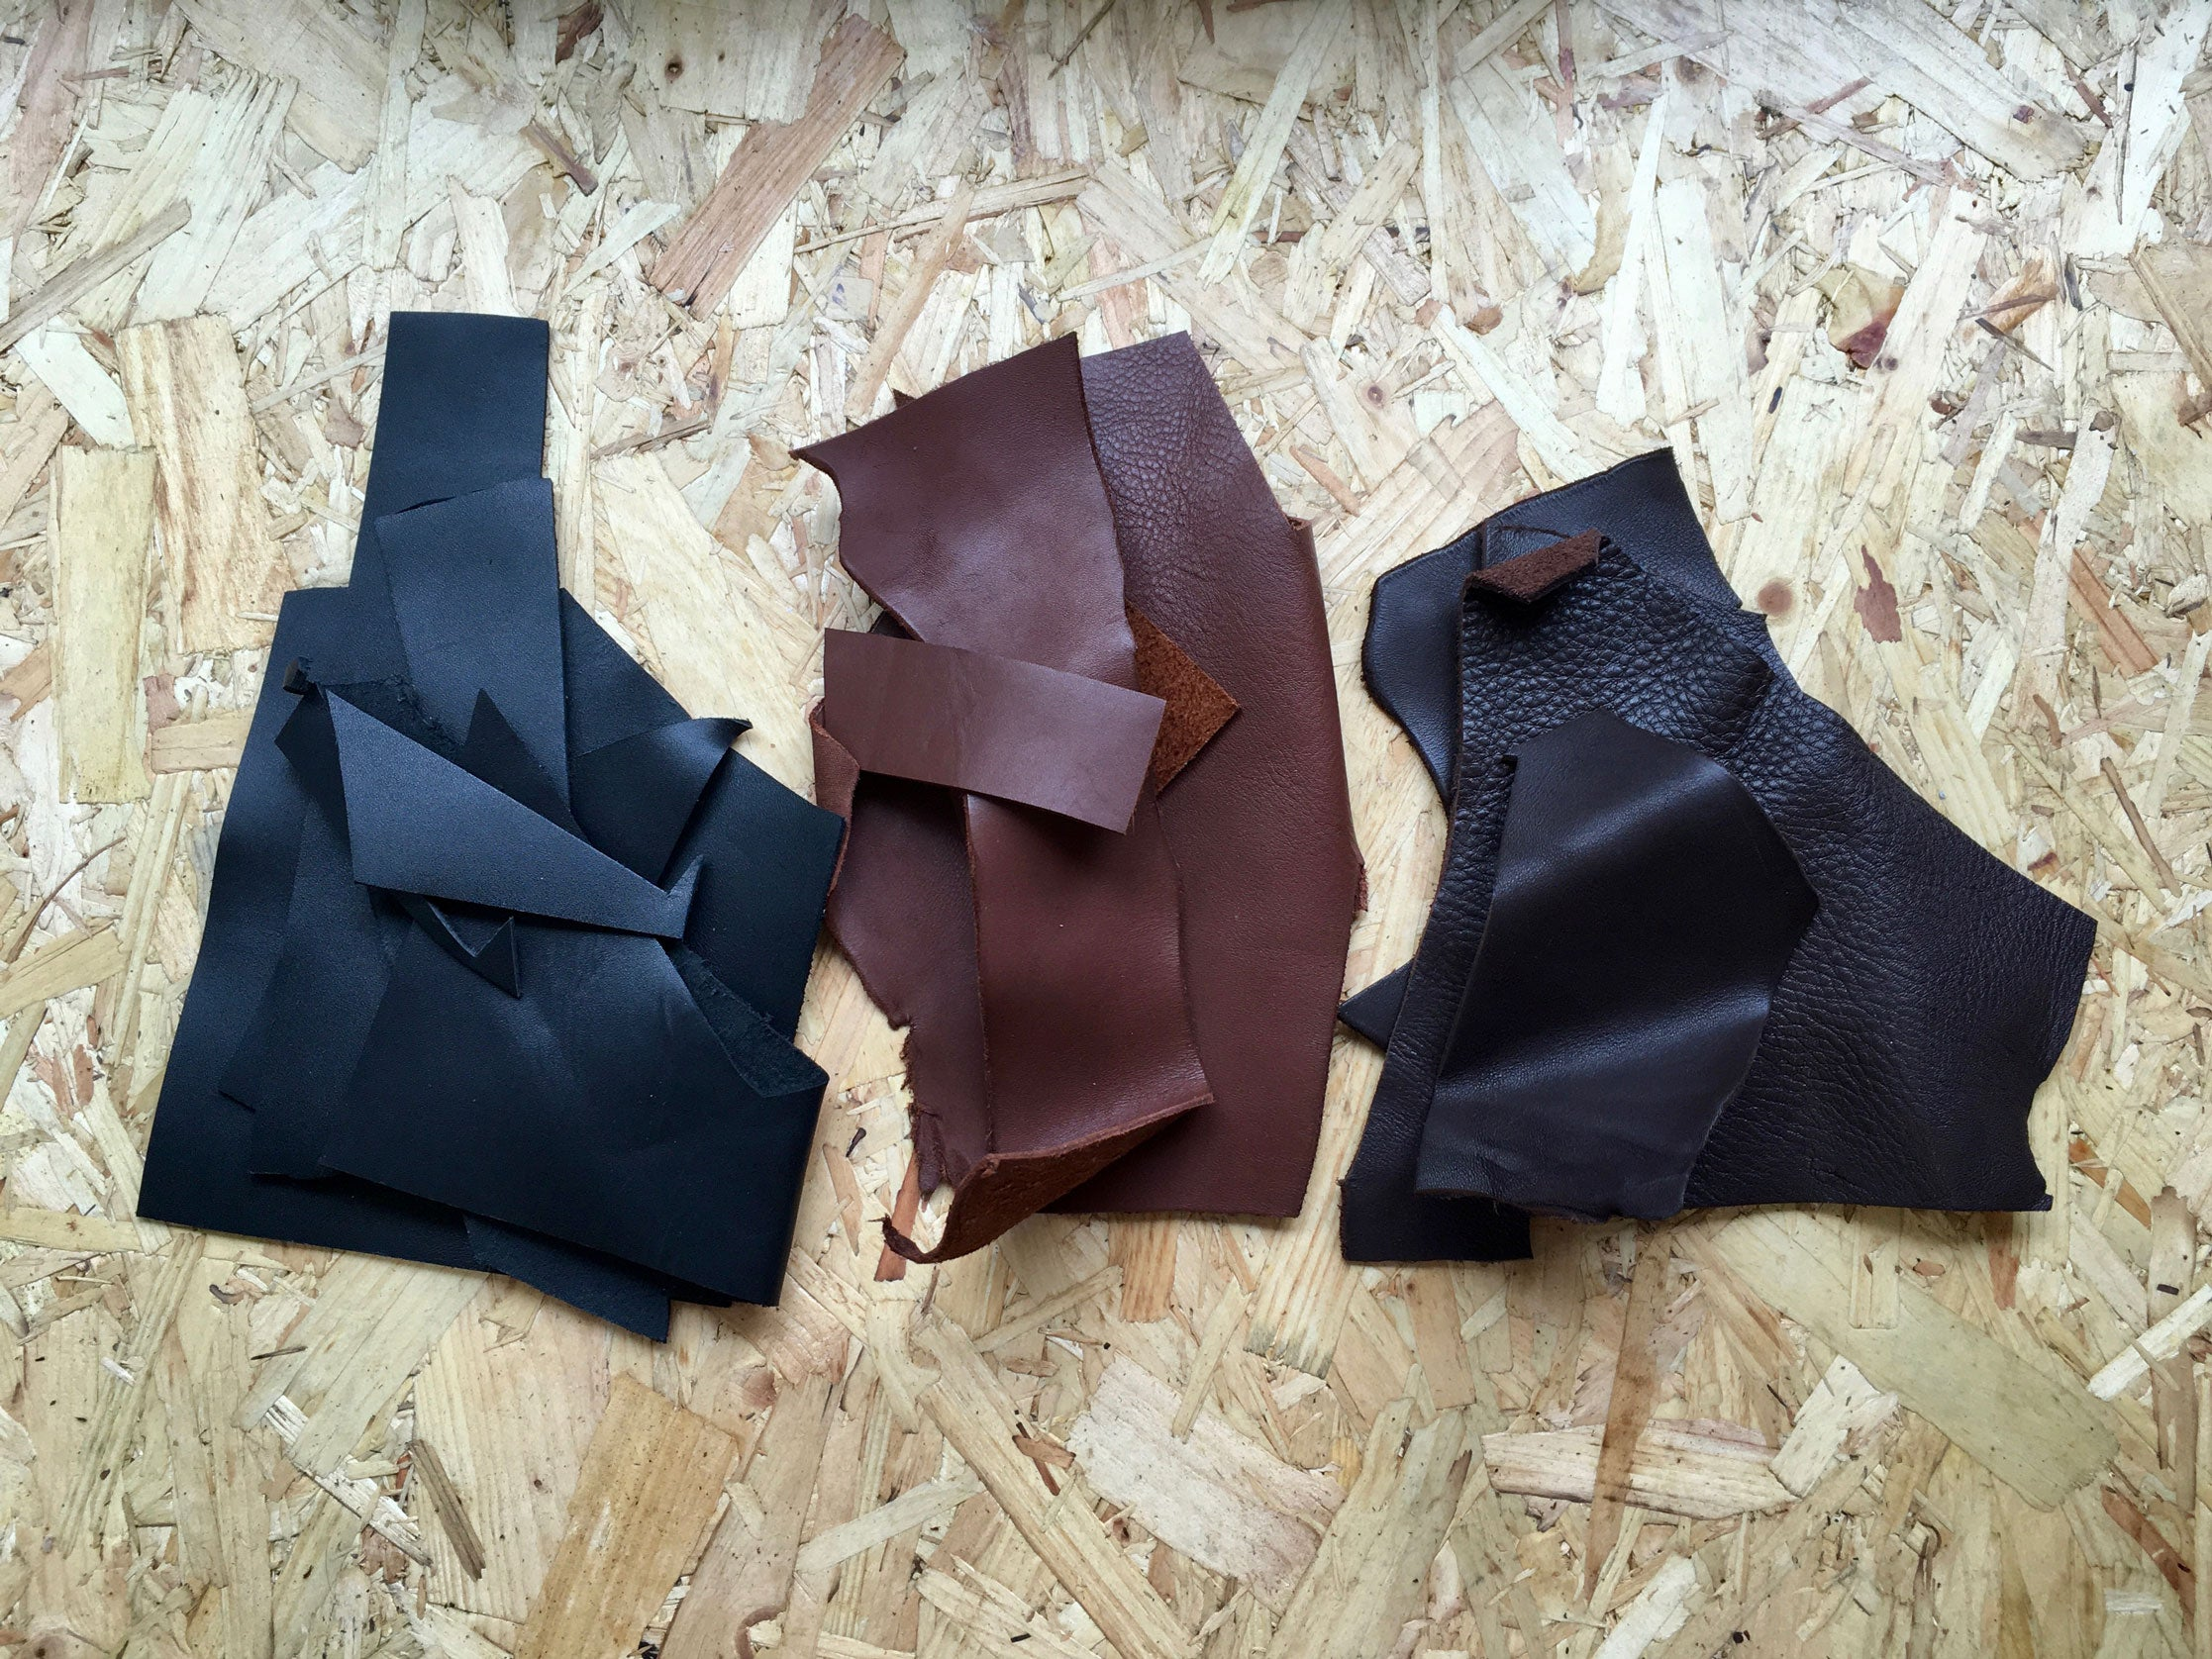 All available colours - black, light brown and dark brown, Scrap Leather Offcuts – Light Brown Cowhide Leather Pieces by Bookshell Bindery